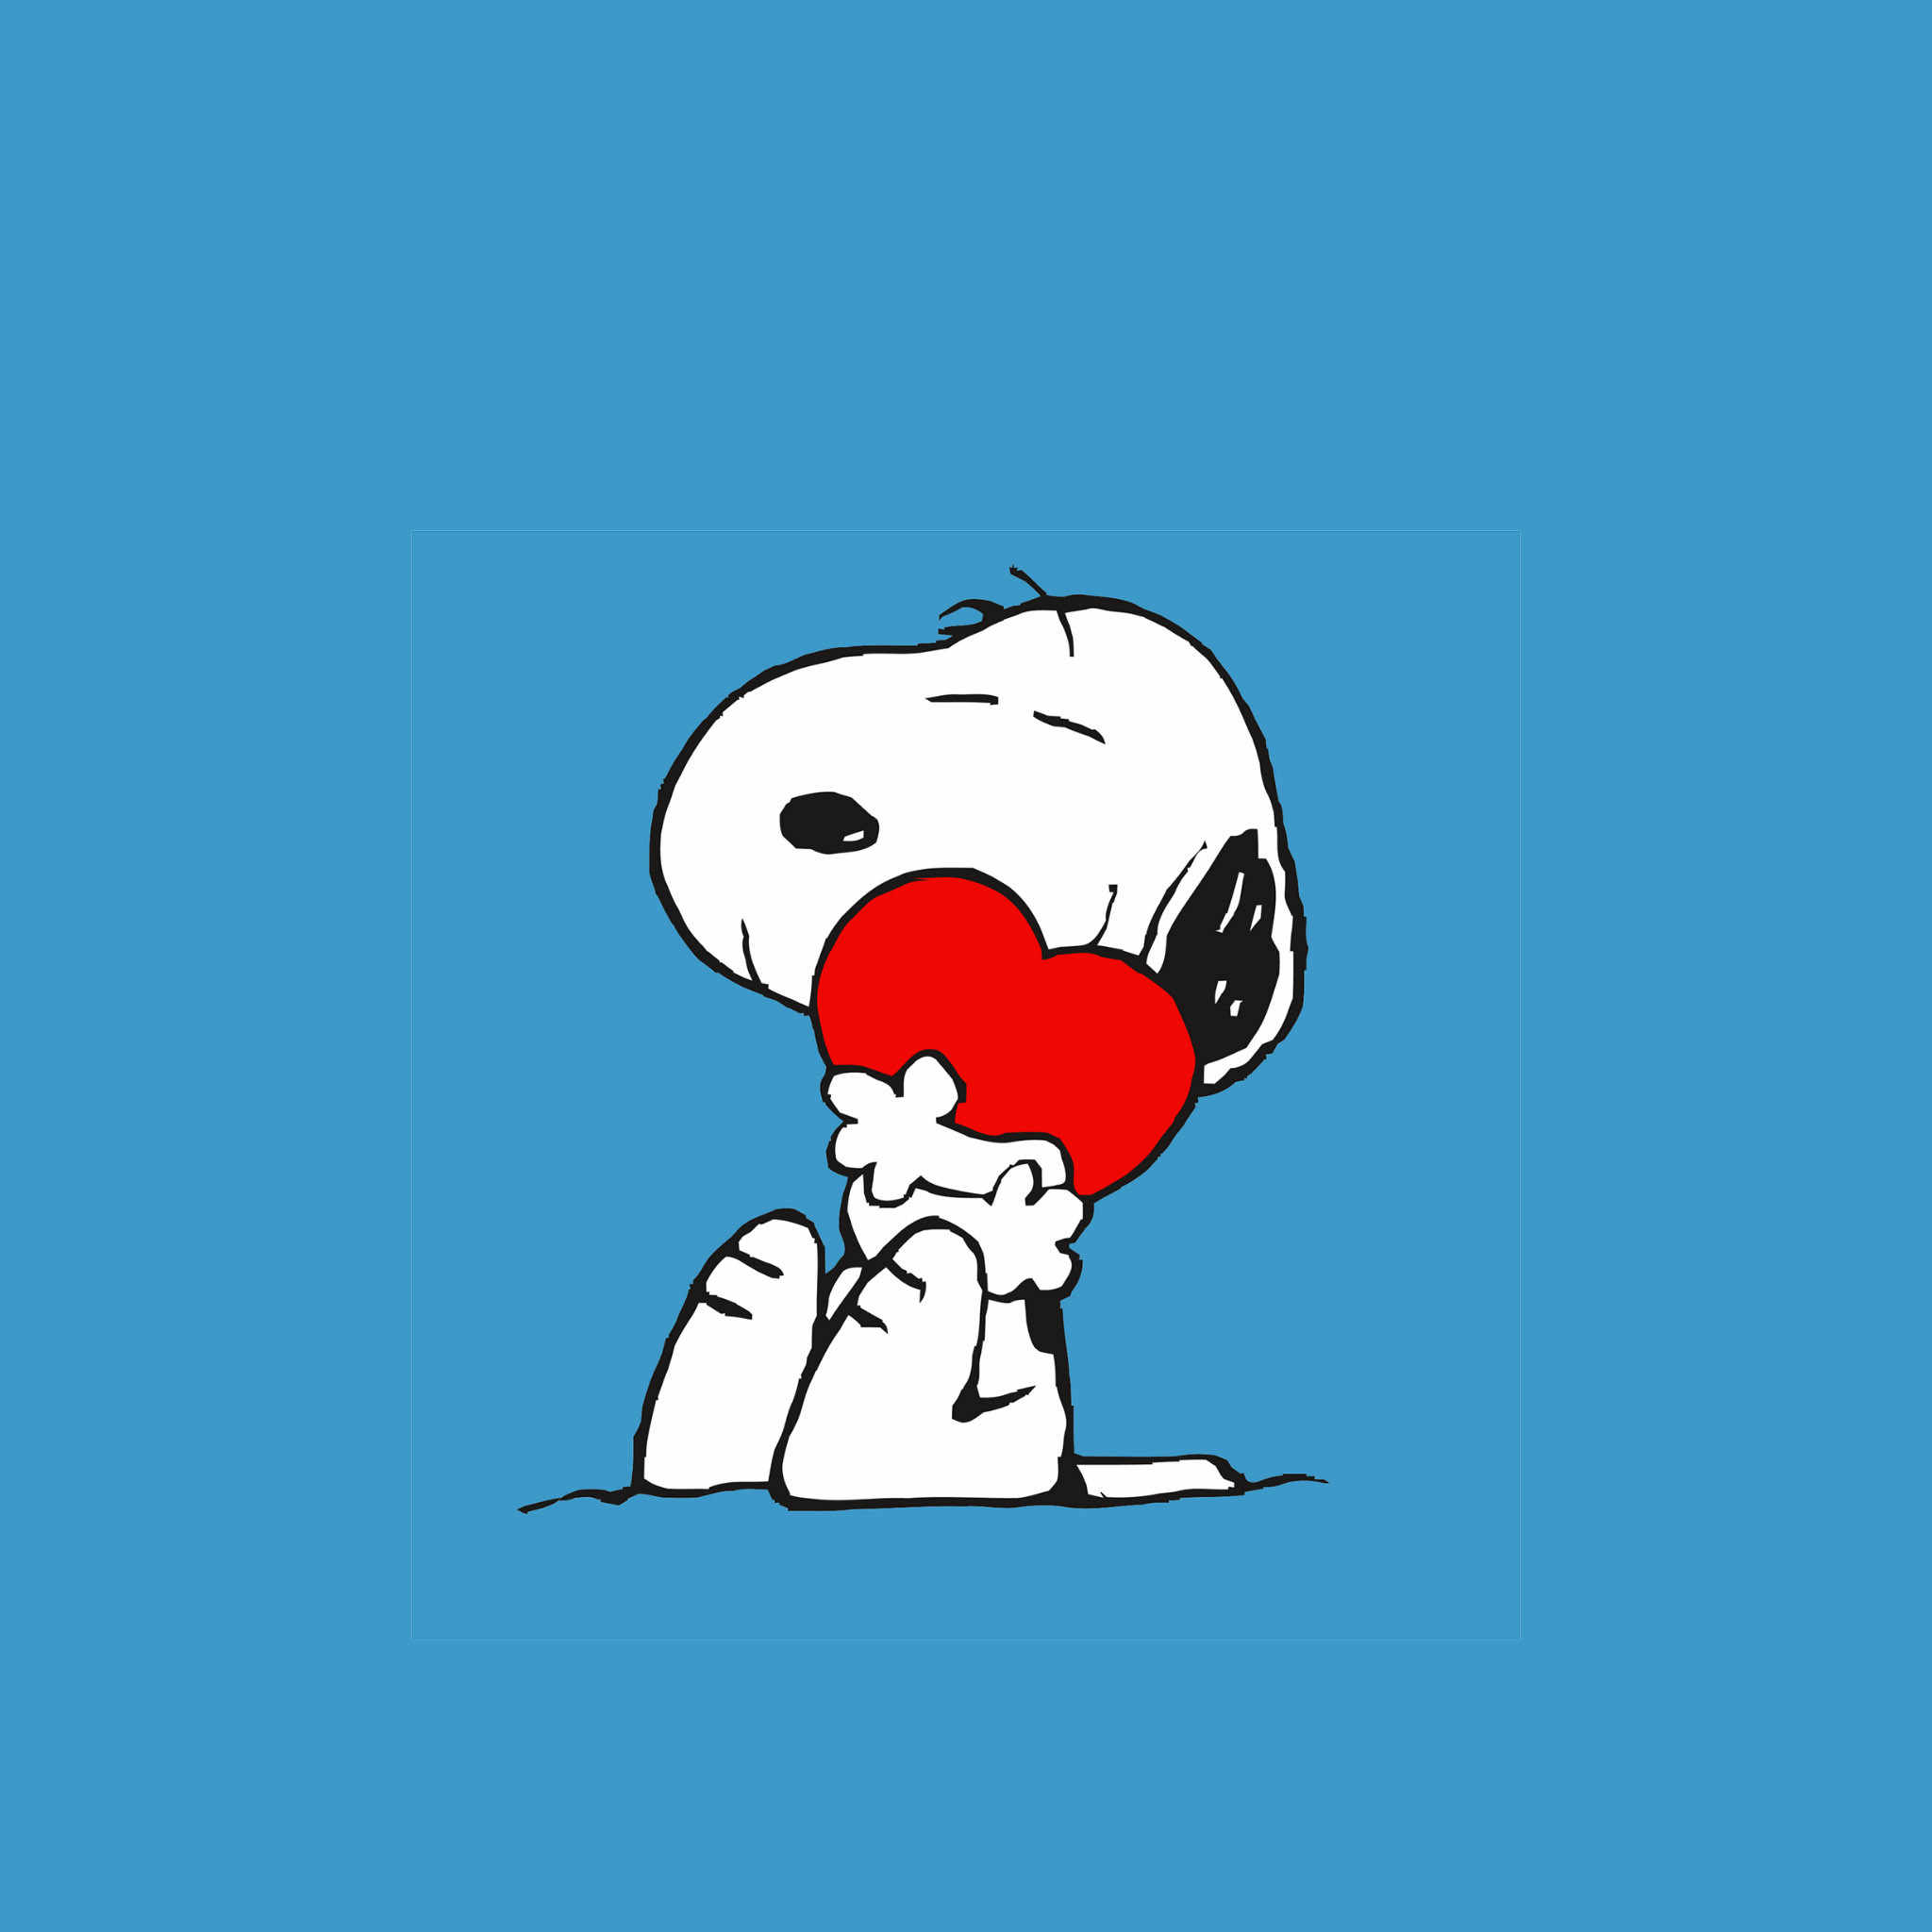 Snoopy and Woodstock Wallpaper (49+ images)